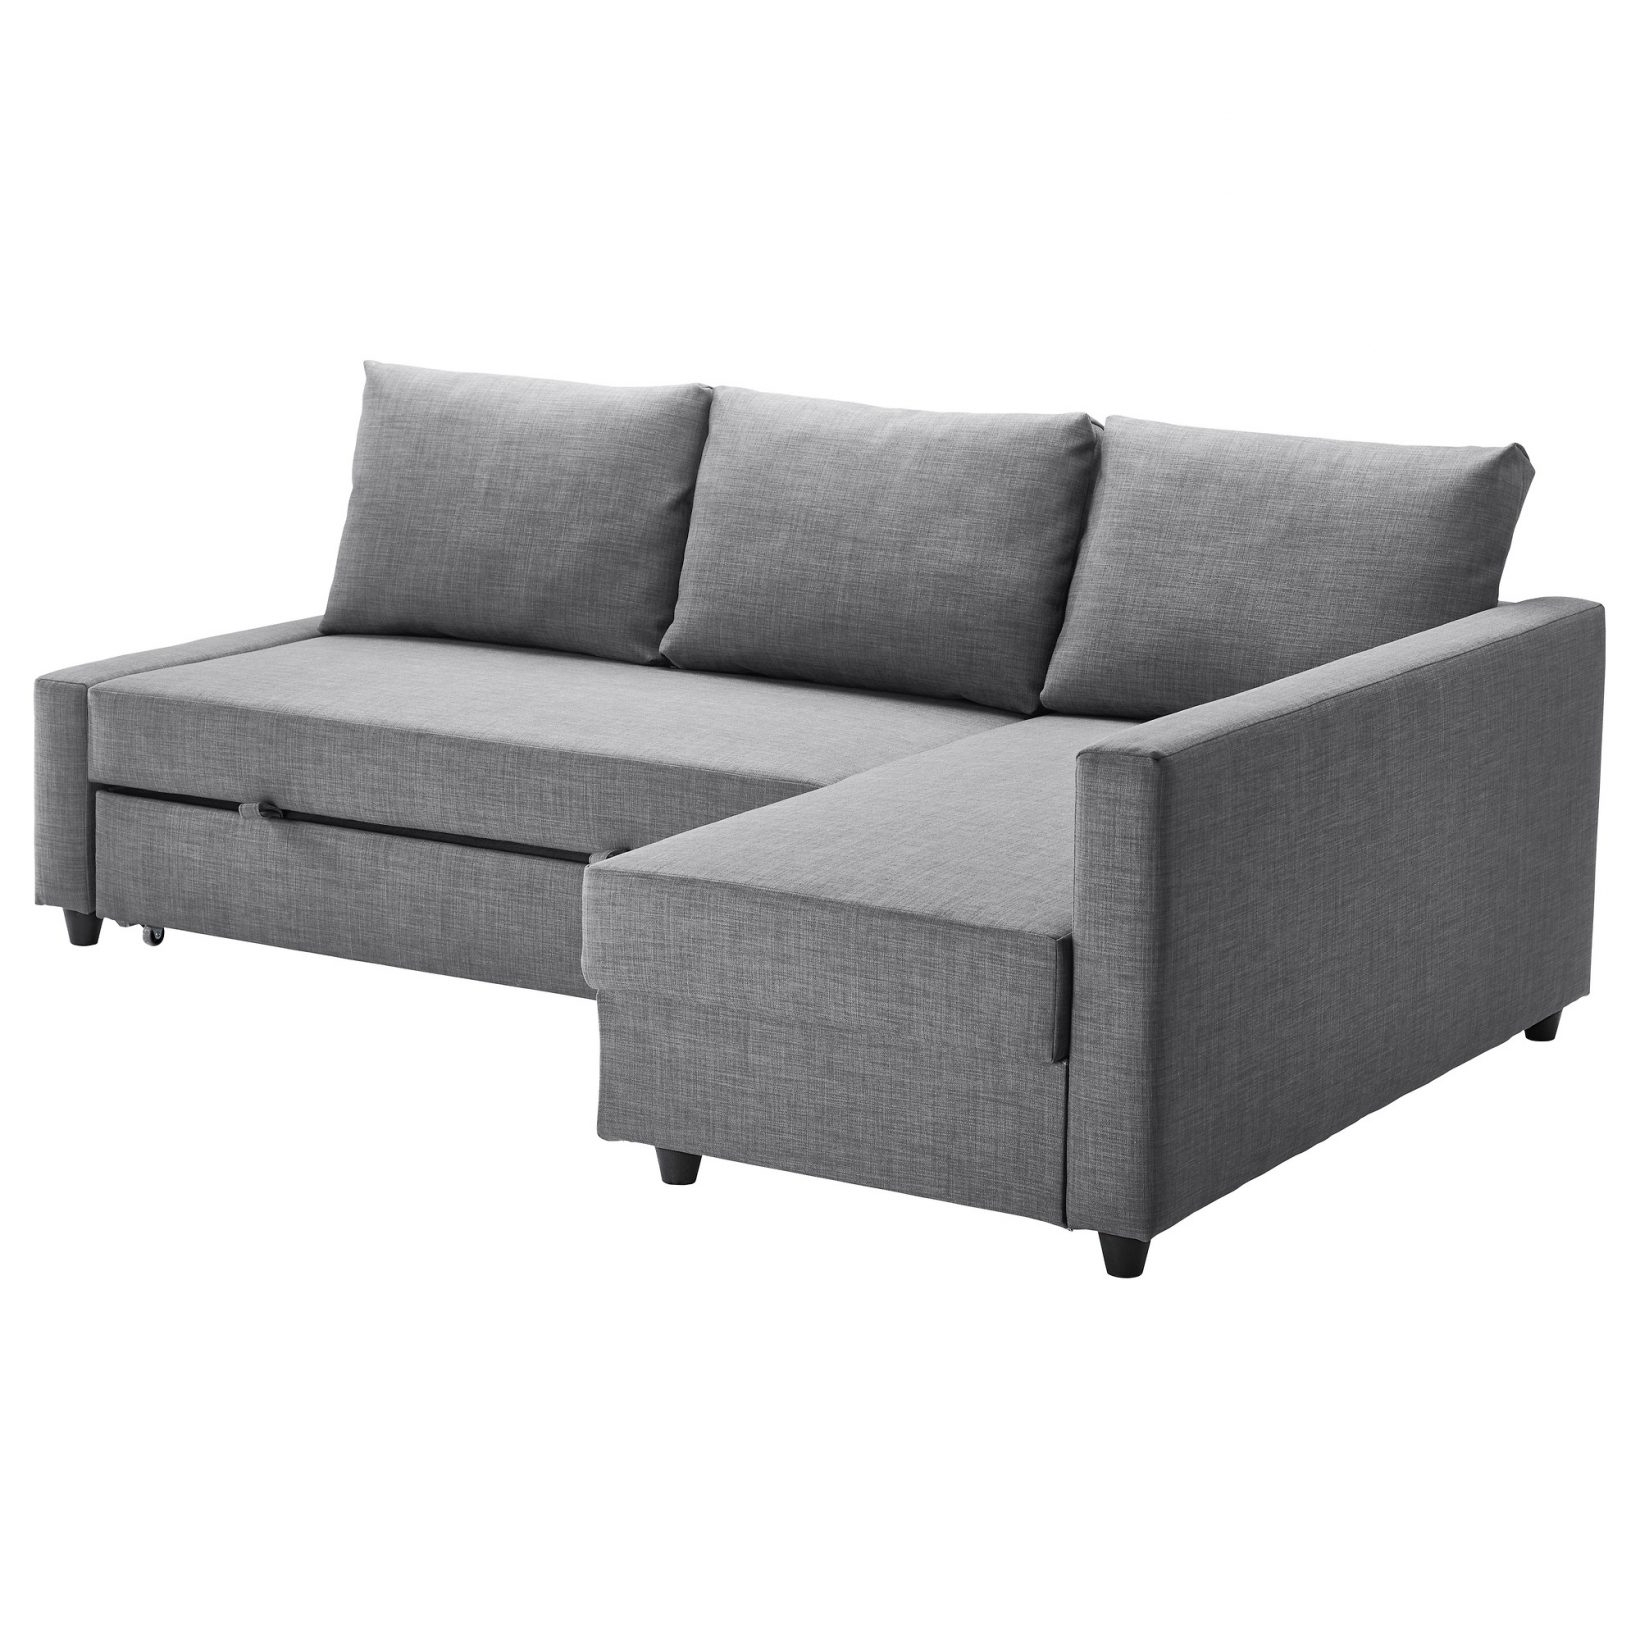 Ikea Corner Sofas With Storage With Most Up To Date Friheten Corner Sofa Bed With Storage – Skiftebo Dark Gray – Ikea (View 15 of 20)